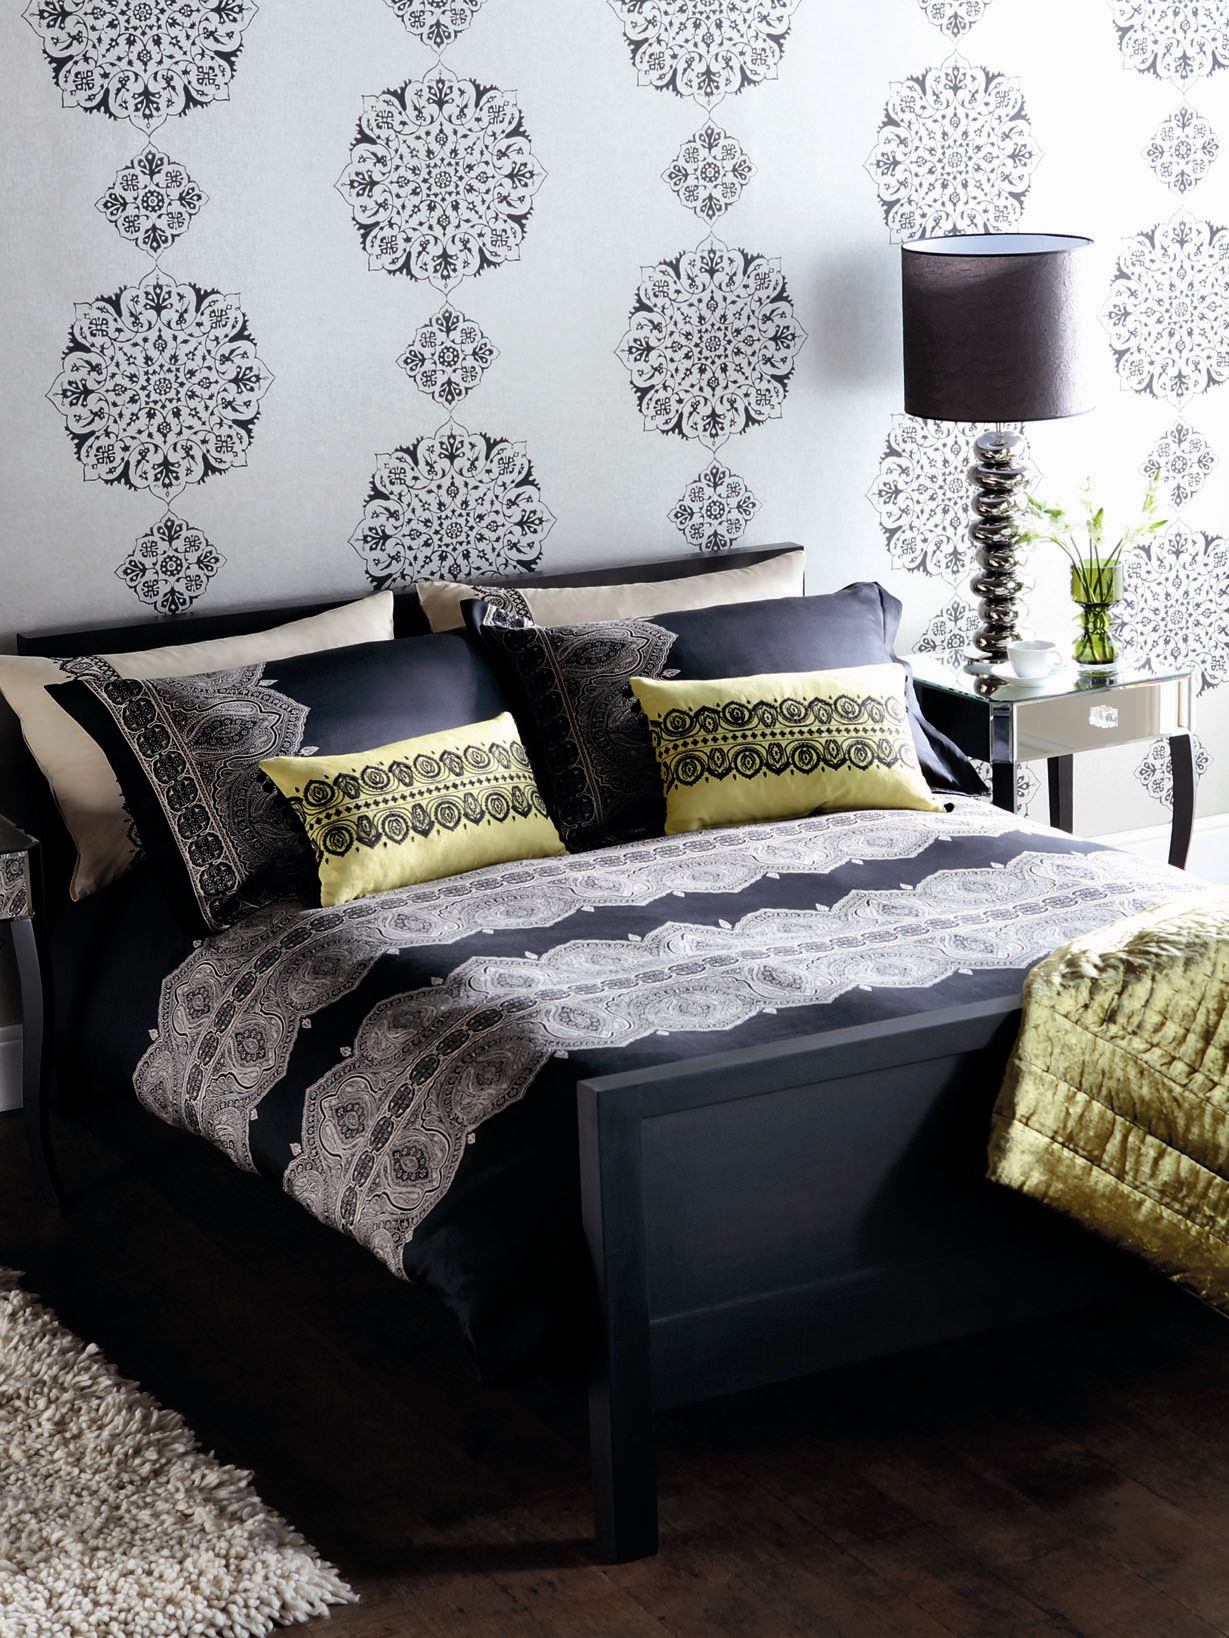 Azara black single duvet cover